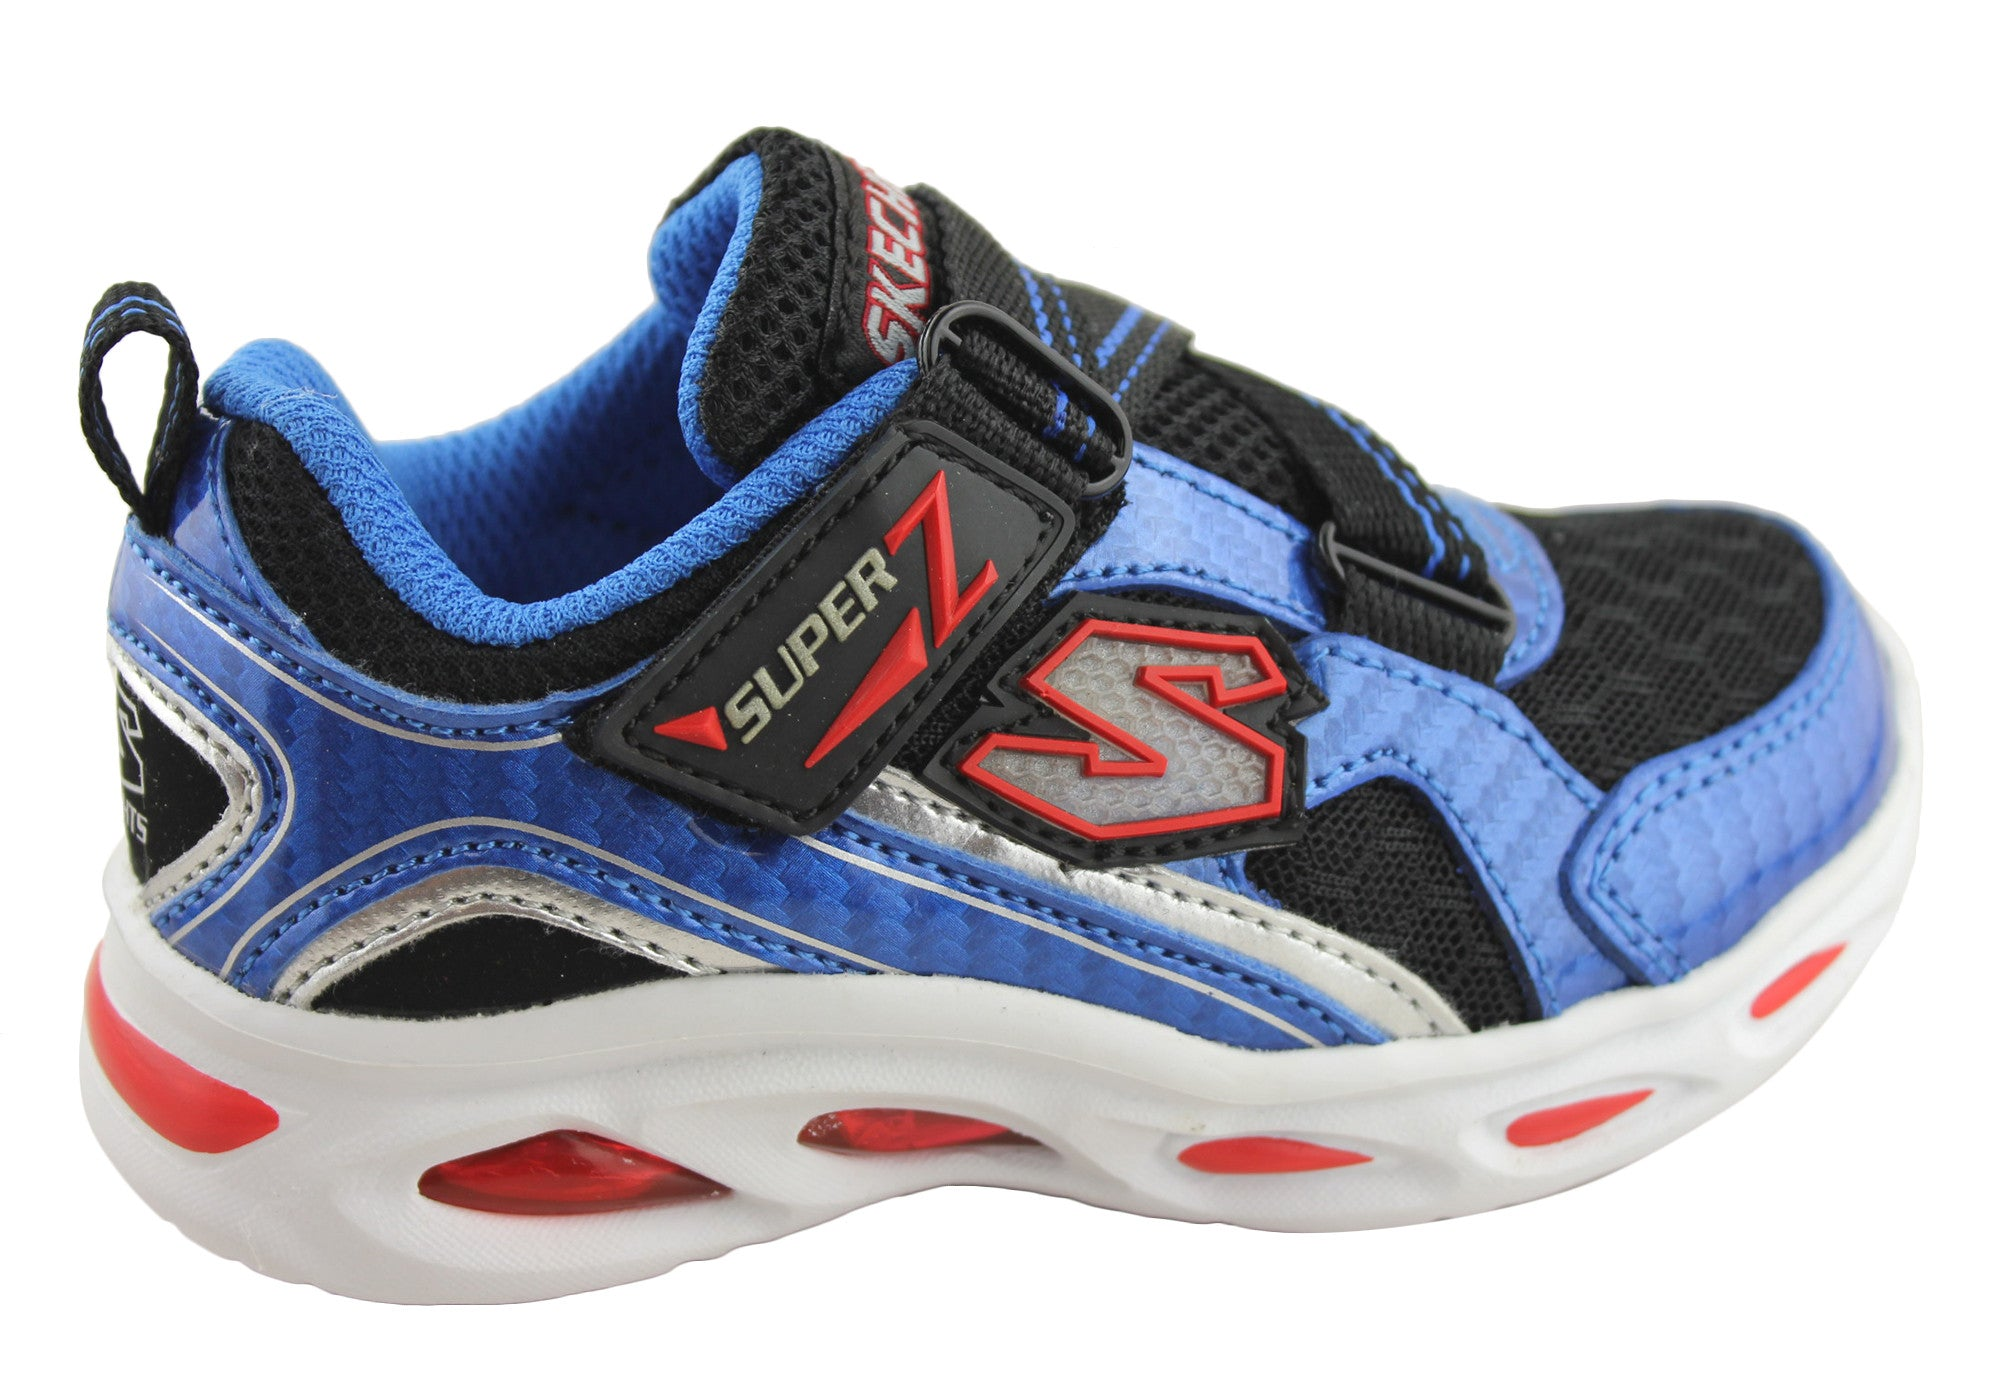 Skechers S Lights Ipox Infant Boys Shoes